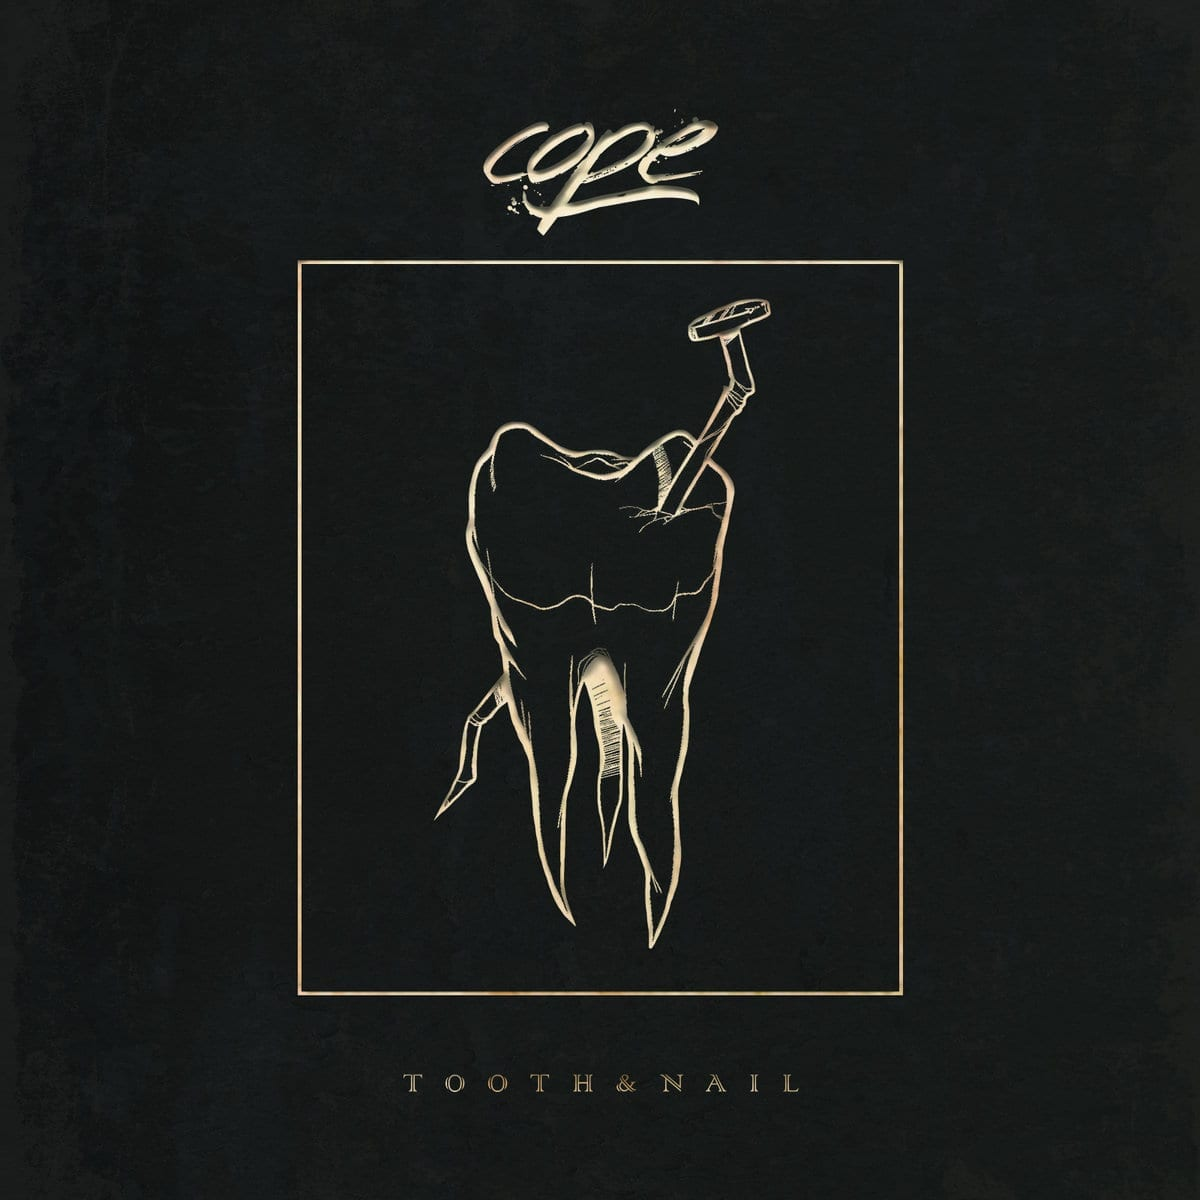 EP Review: Tooth & Nail // COPE